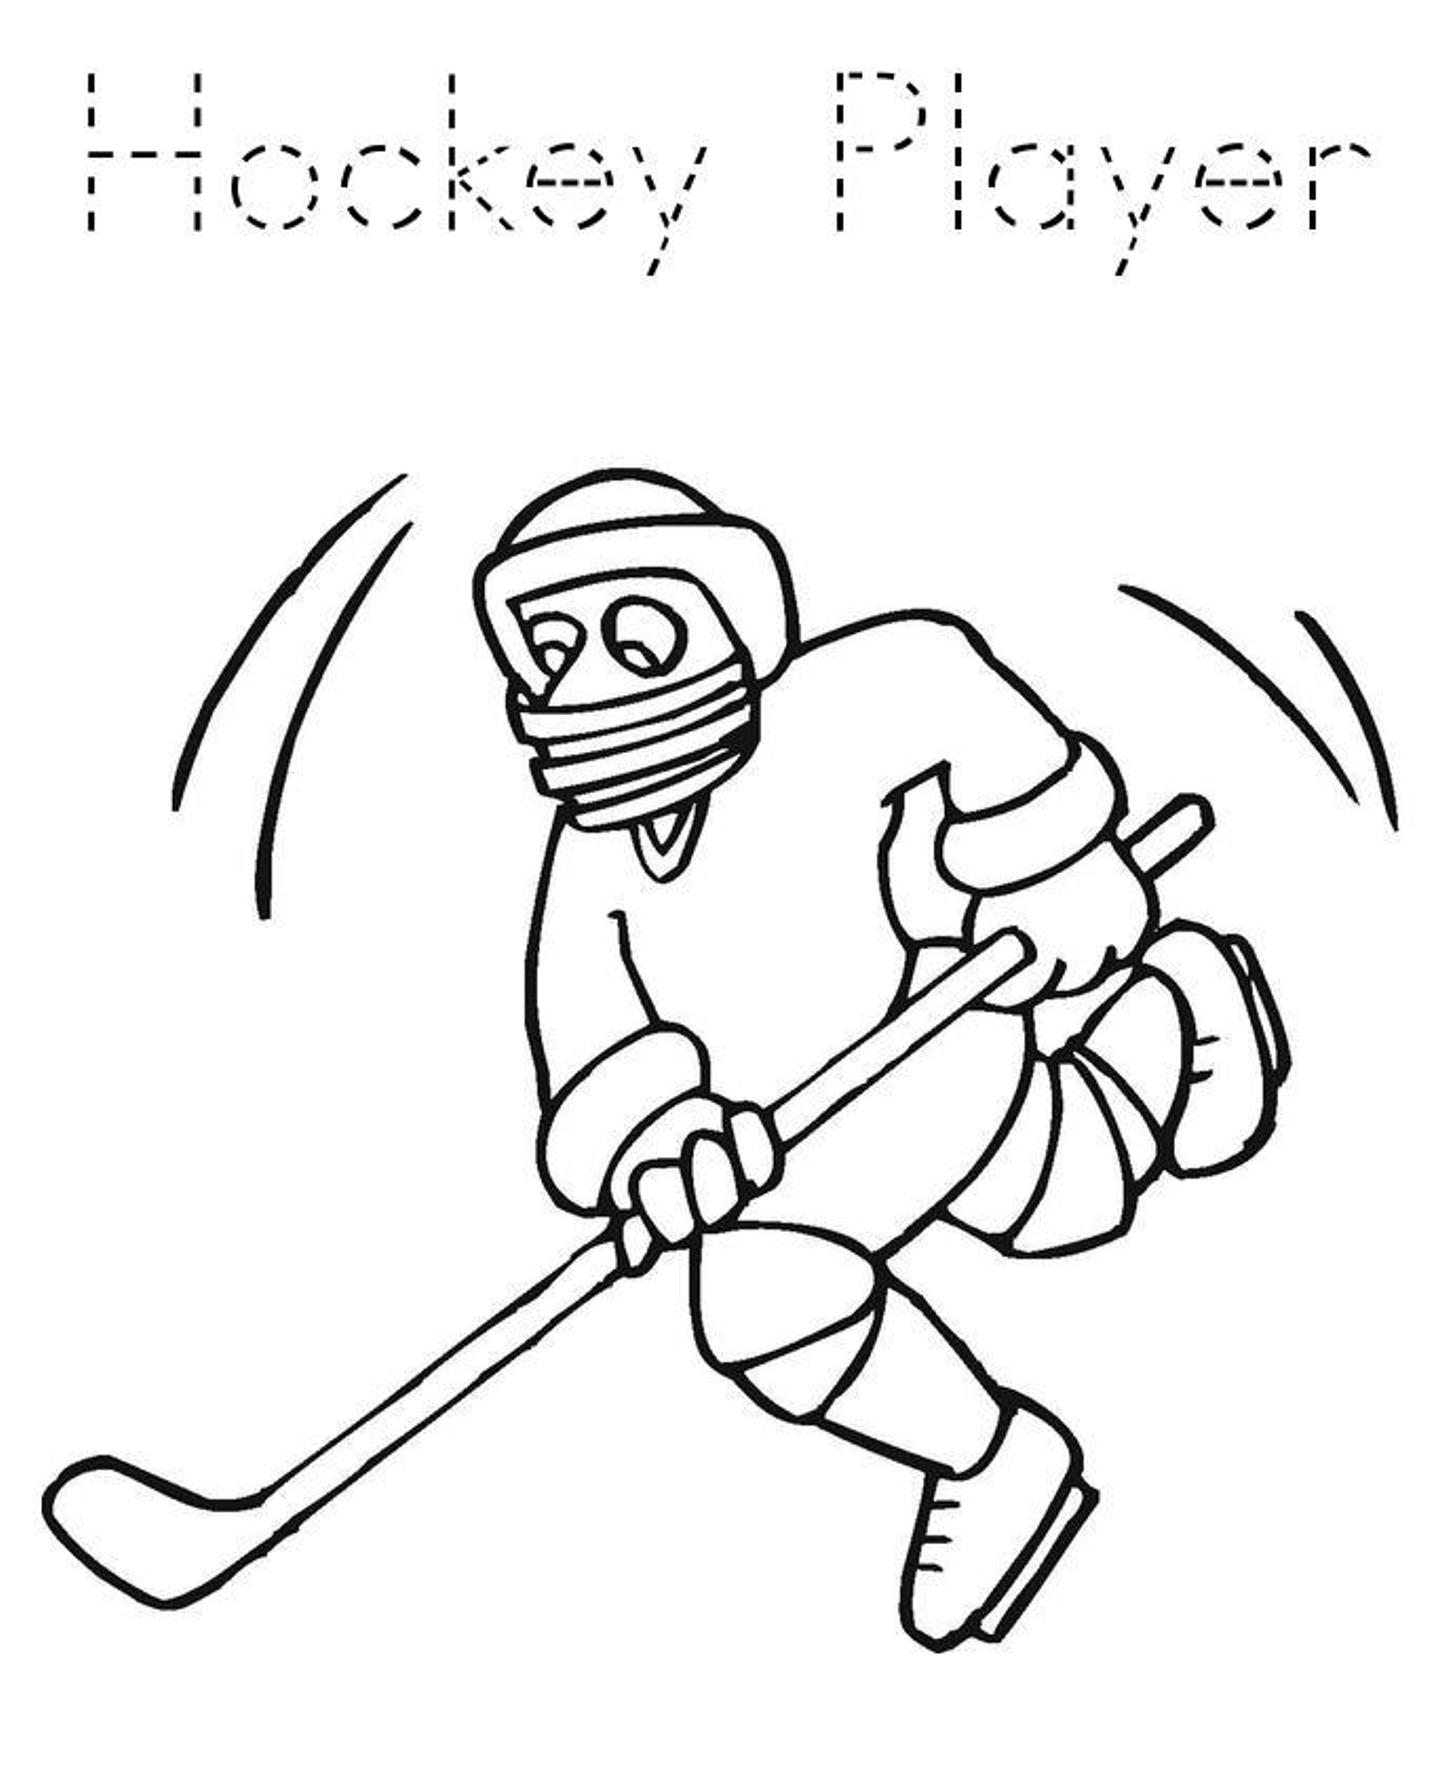 Hockey Players Drawing at GetDrawings.com | Free for personal use ...